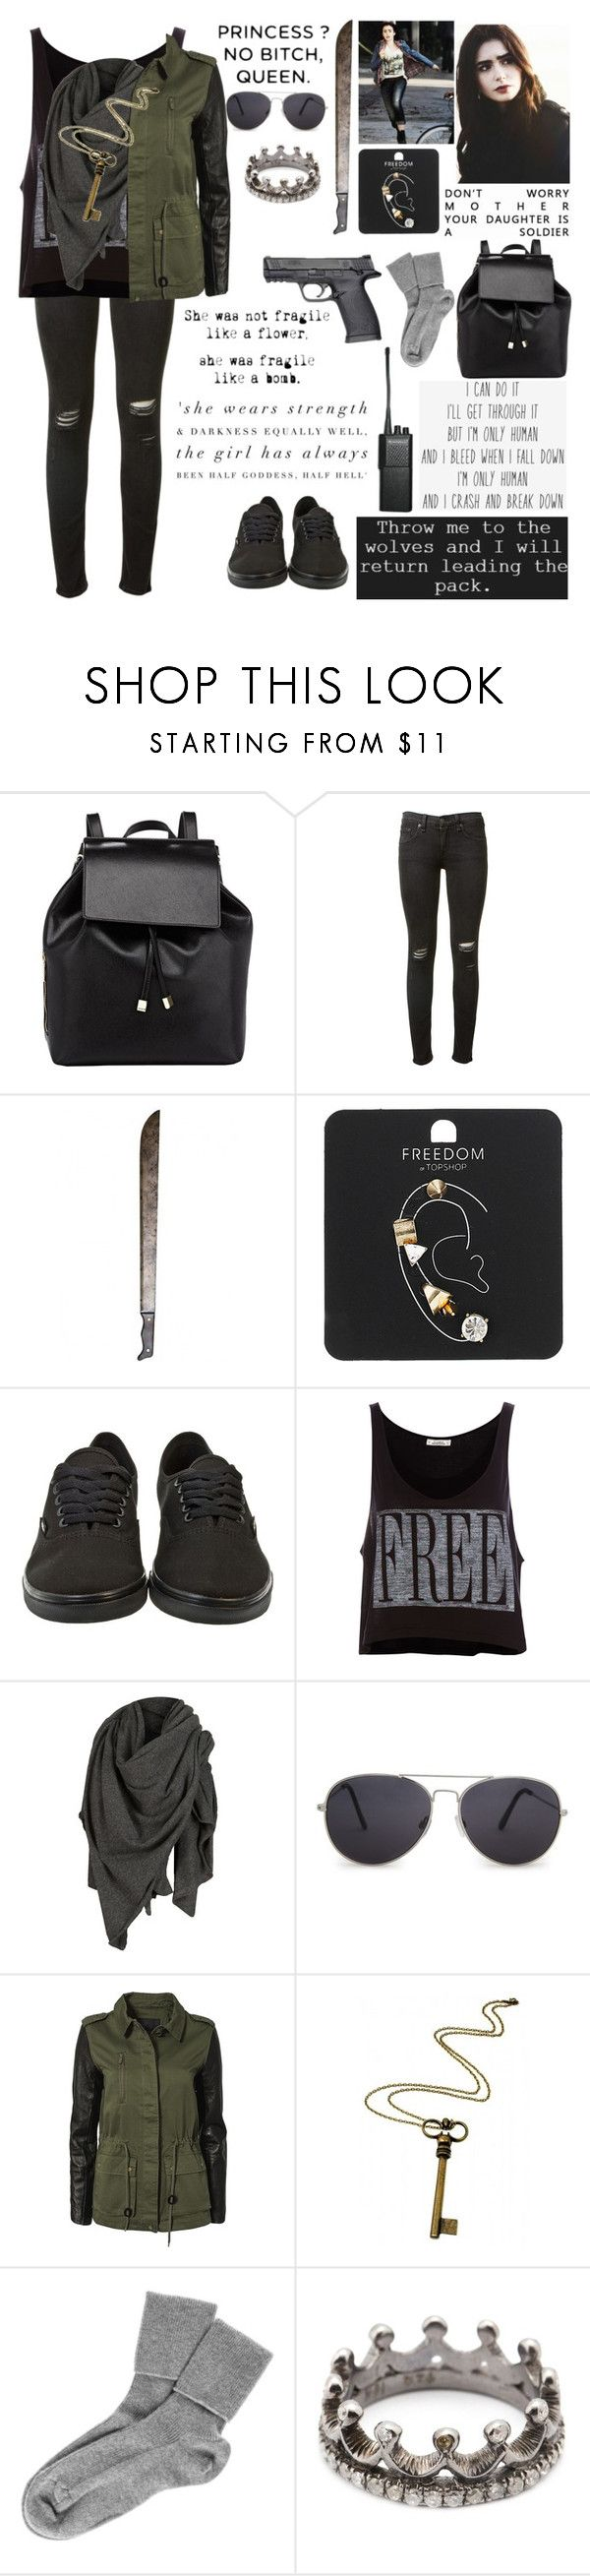 """""""Maddison Blake· The Walking Dead"""" by etiennemikaelson ❤ liked on Polyvore featuring Barneys New York, GET LOST, rag & bone, Motorola, L K, Topshop, Vans, Pull&Bear, AllSaints and MANGO"""